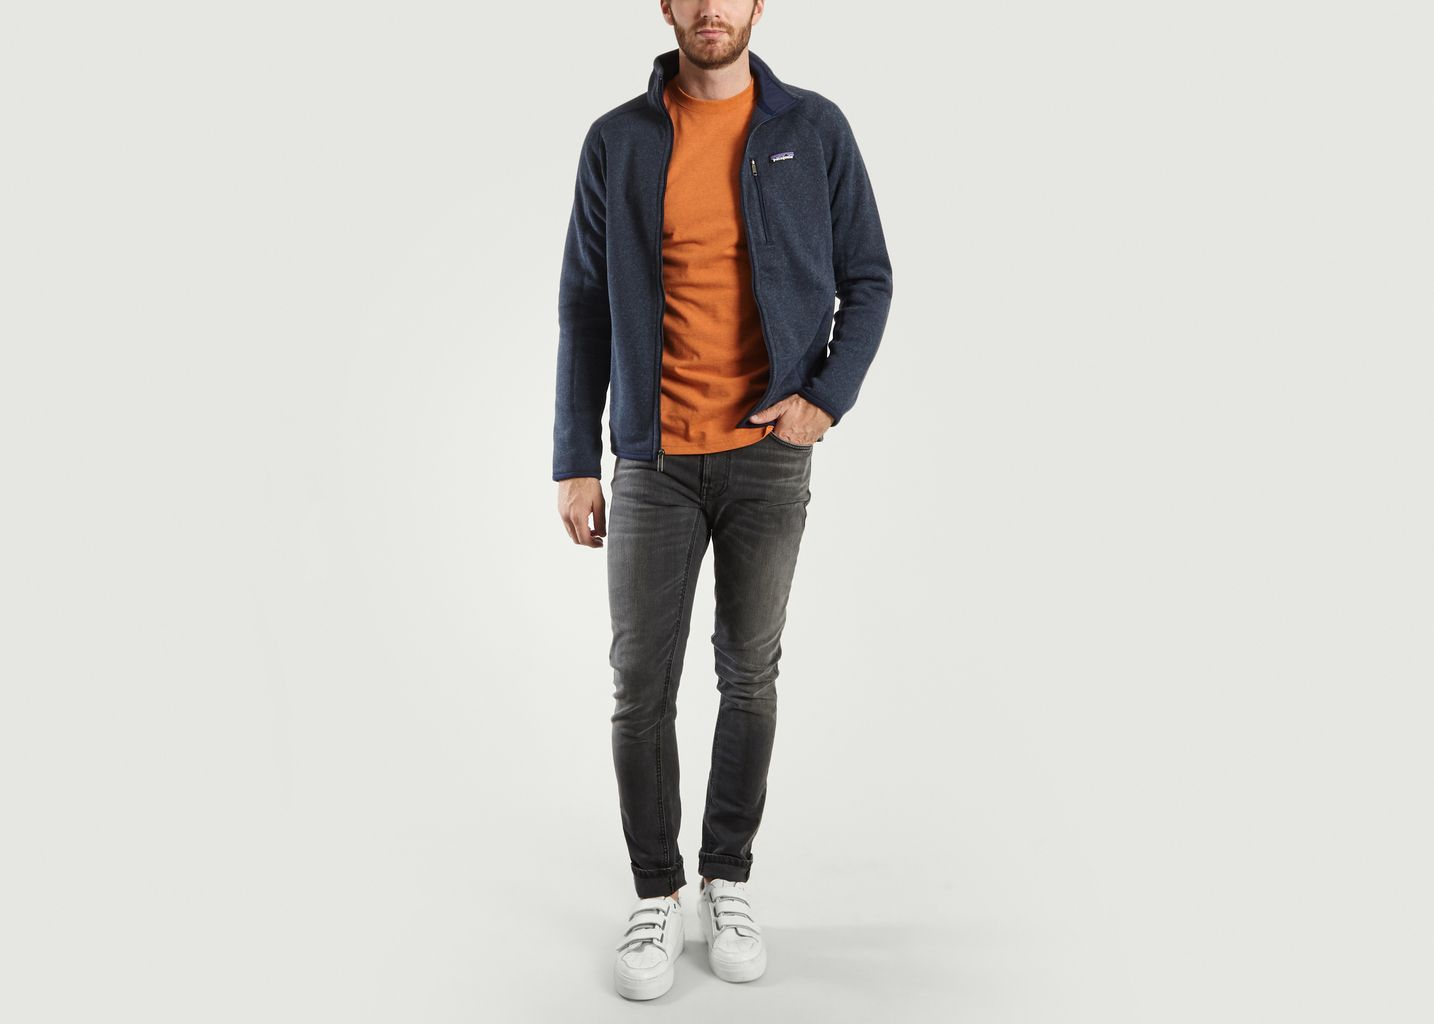 Zippé Bleu L'exception Doublé Marine Polaire Sweat Patagonia Better Px1pSqw